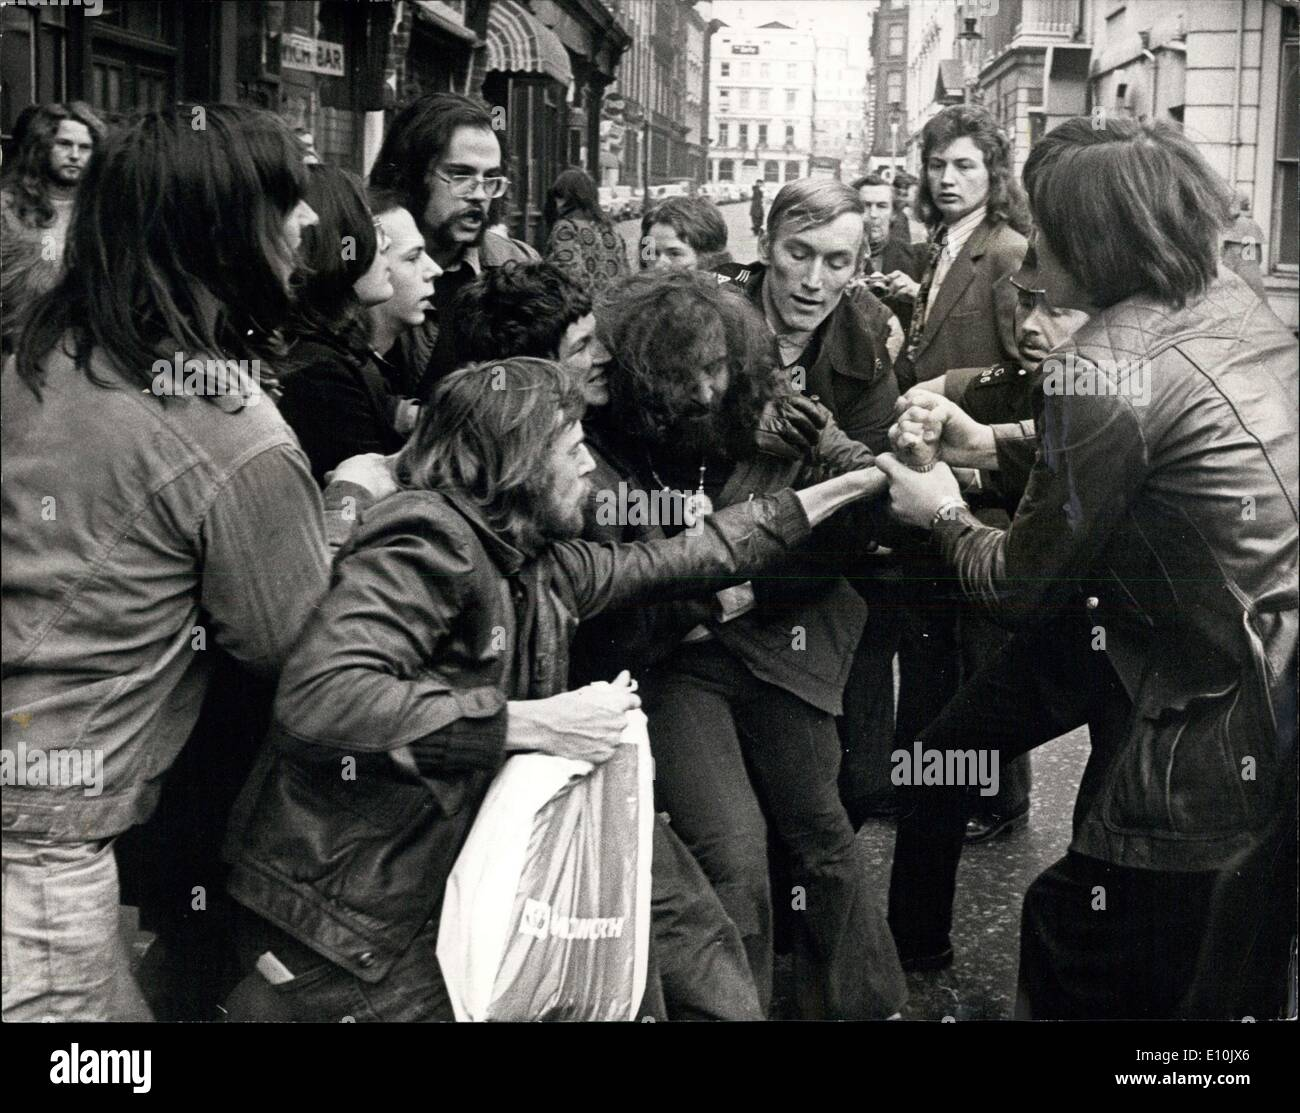 Mar. 10, 1973 - March 10th 1973 Women's Lib and supporters stage sit-down in Trafalgar Square Post Office after rally. Women's Lib marchers who marched through London this afternoon to a rally in Trafalgar Square during which a break away group marched to the Trafalgar Square Post Office and stage a sit-in, in protest against Family allowance pay-outs. Police were called and they cleared from the post office making some arrests. Photo Shows: Women's Lib and supporters seen struggling with police outside the post office today. Stock Photo